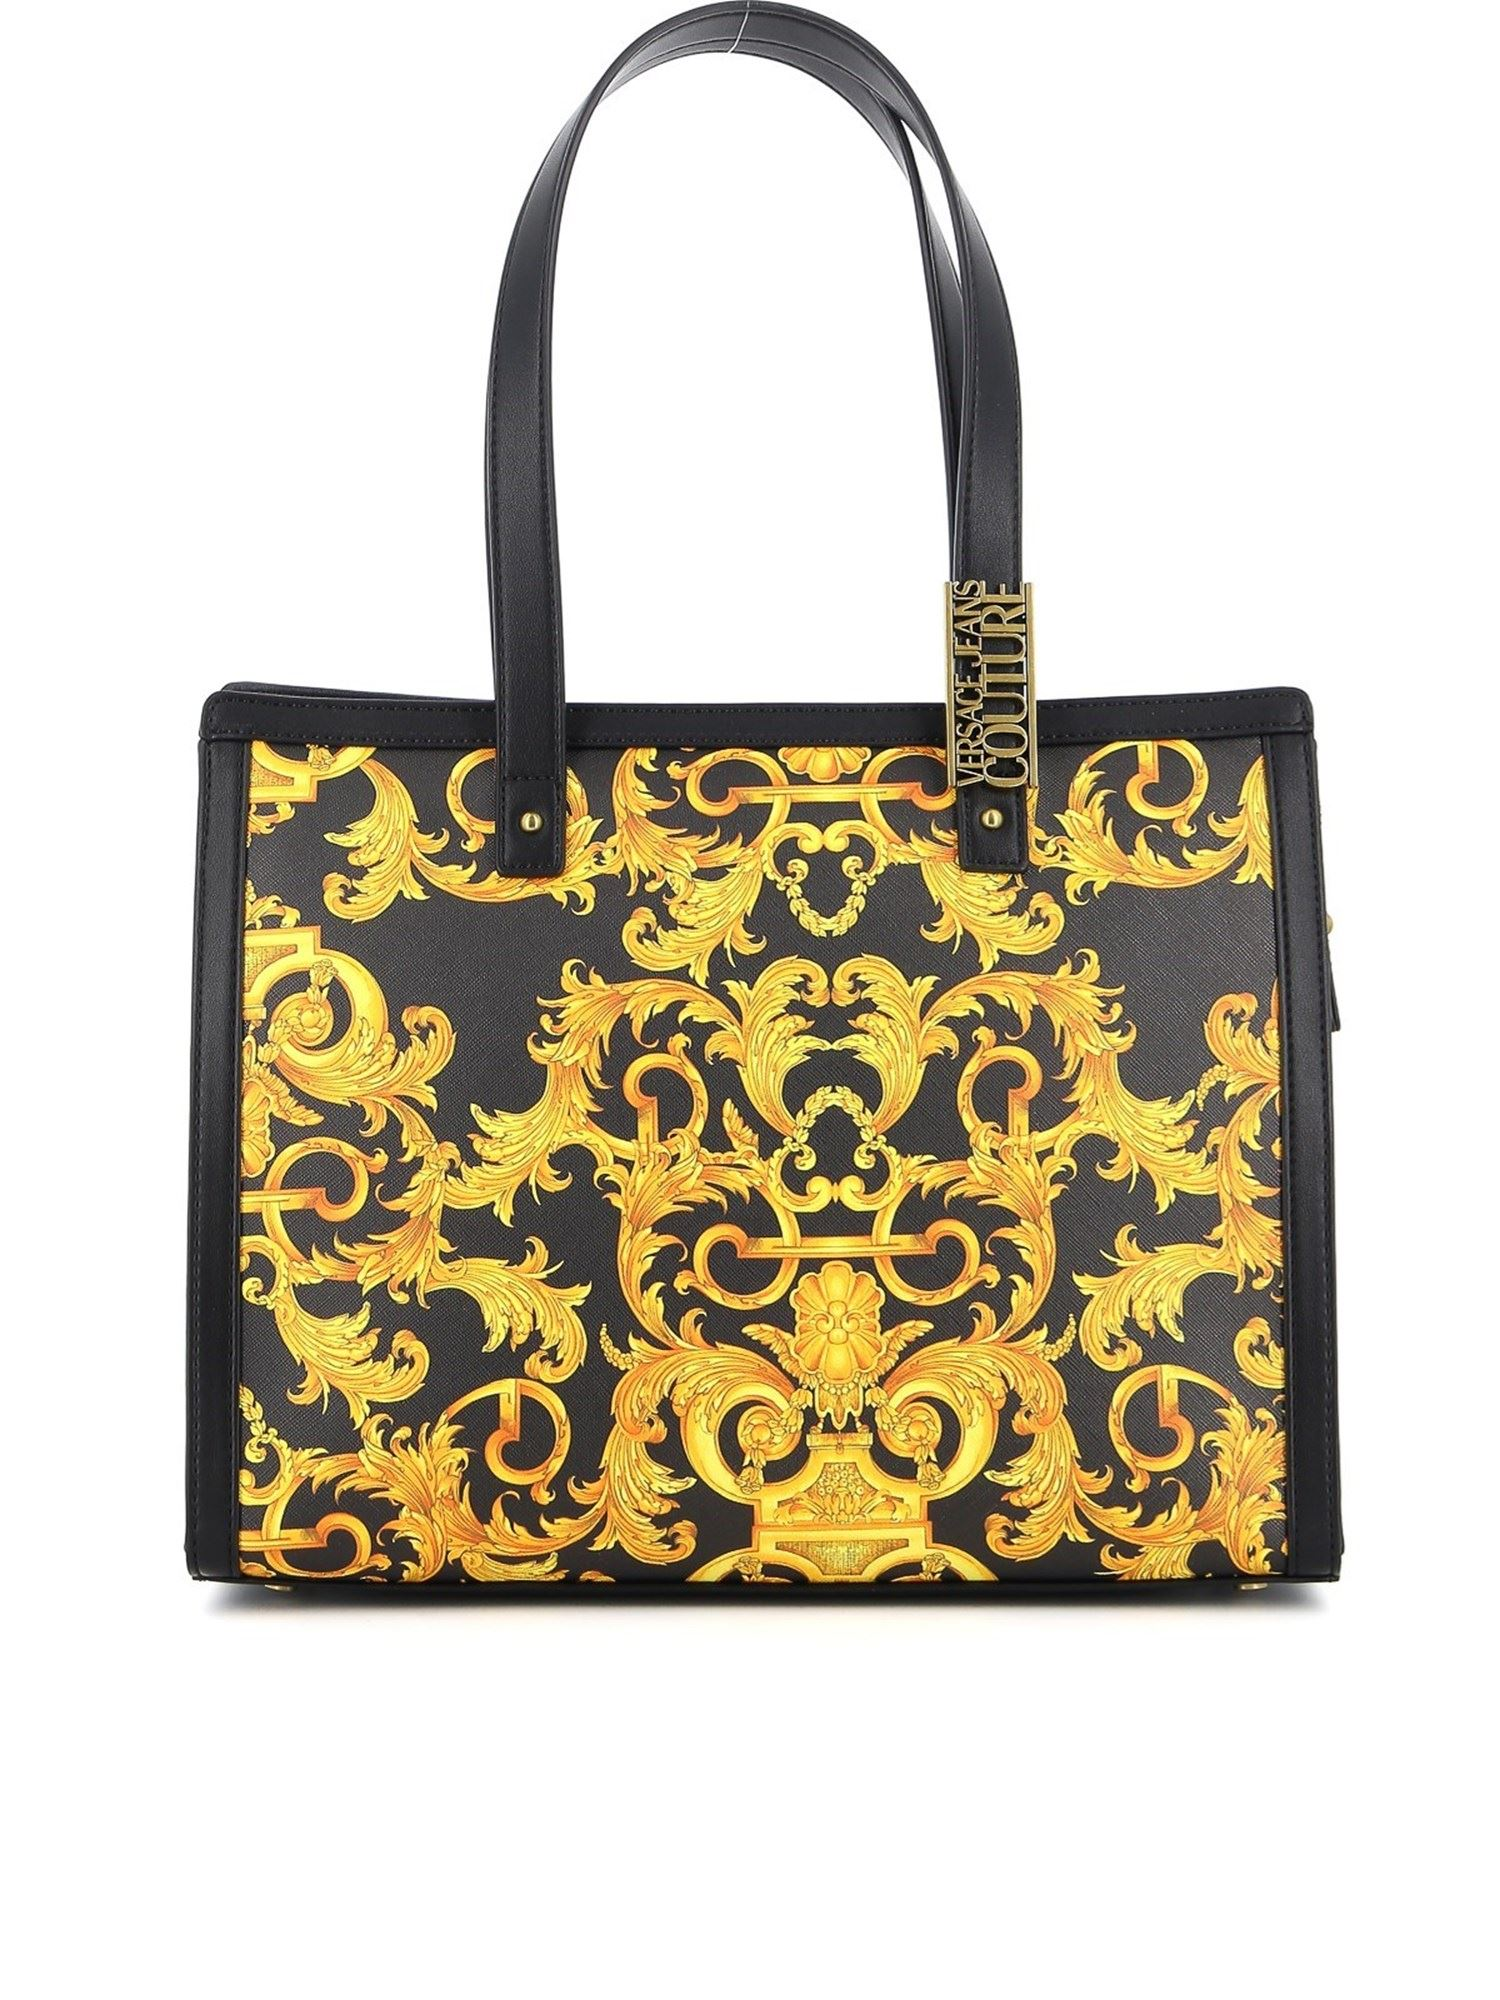 Versace Jeans Couture Leathers BAROQUE PRINT SAFFIANO TOTE IN BLACK